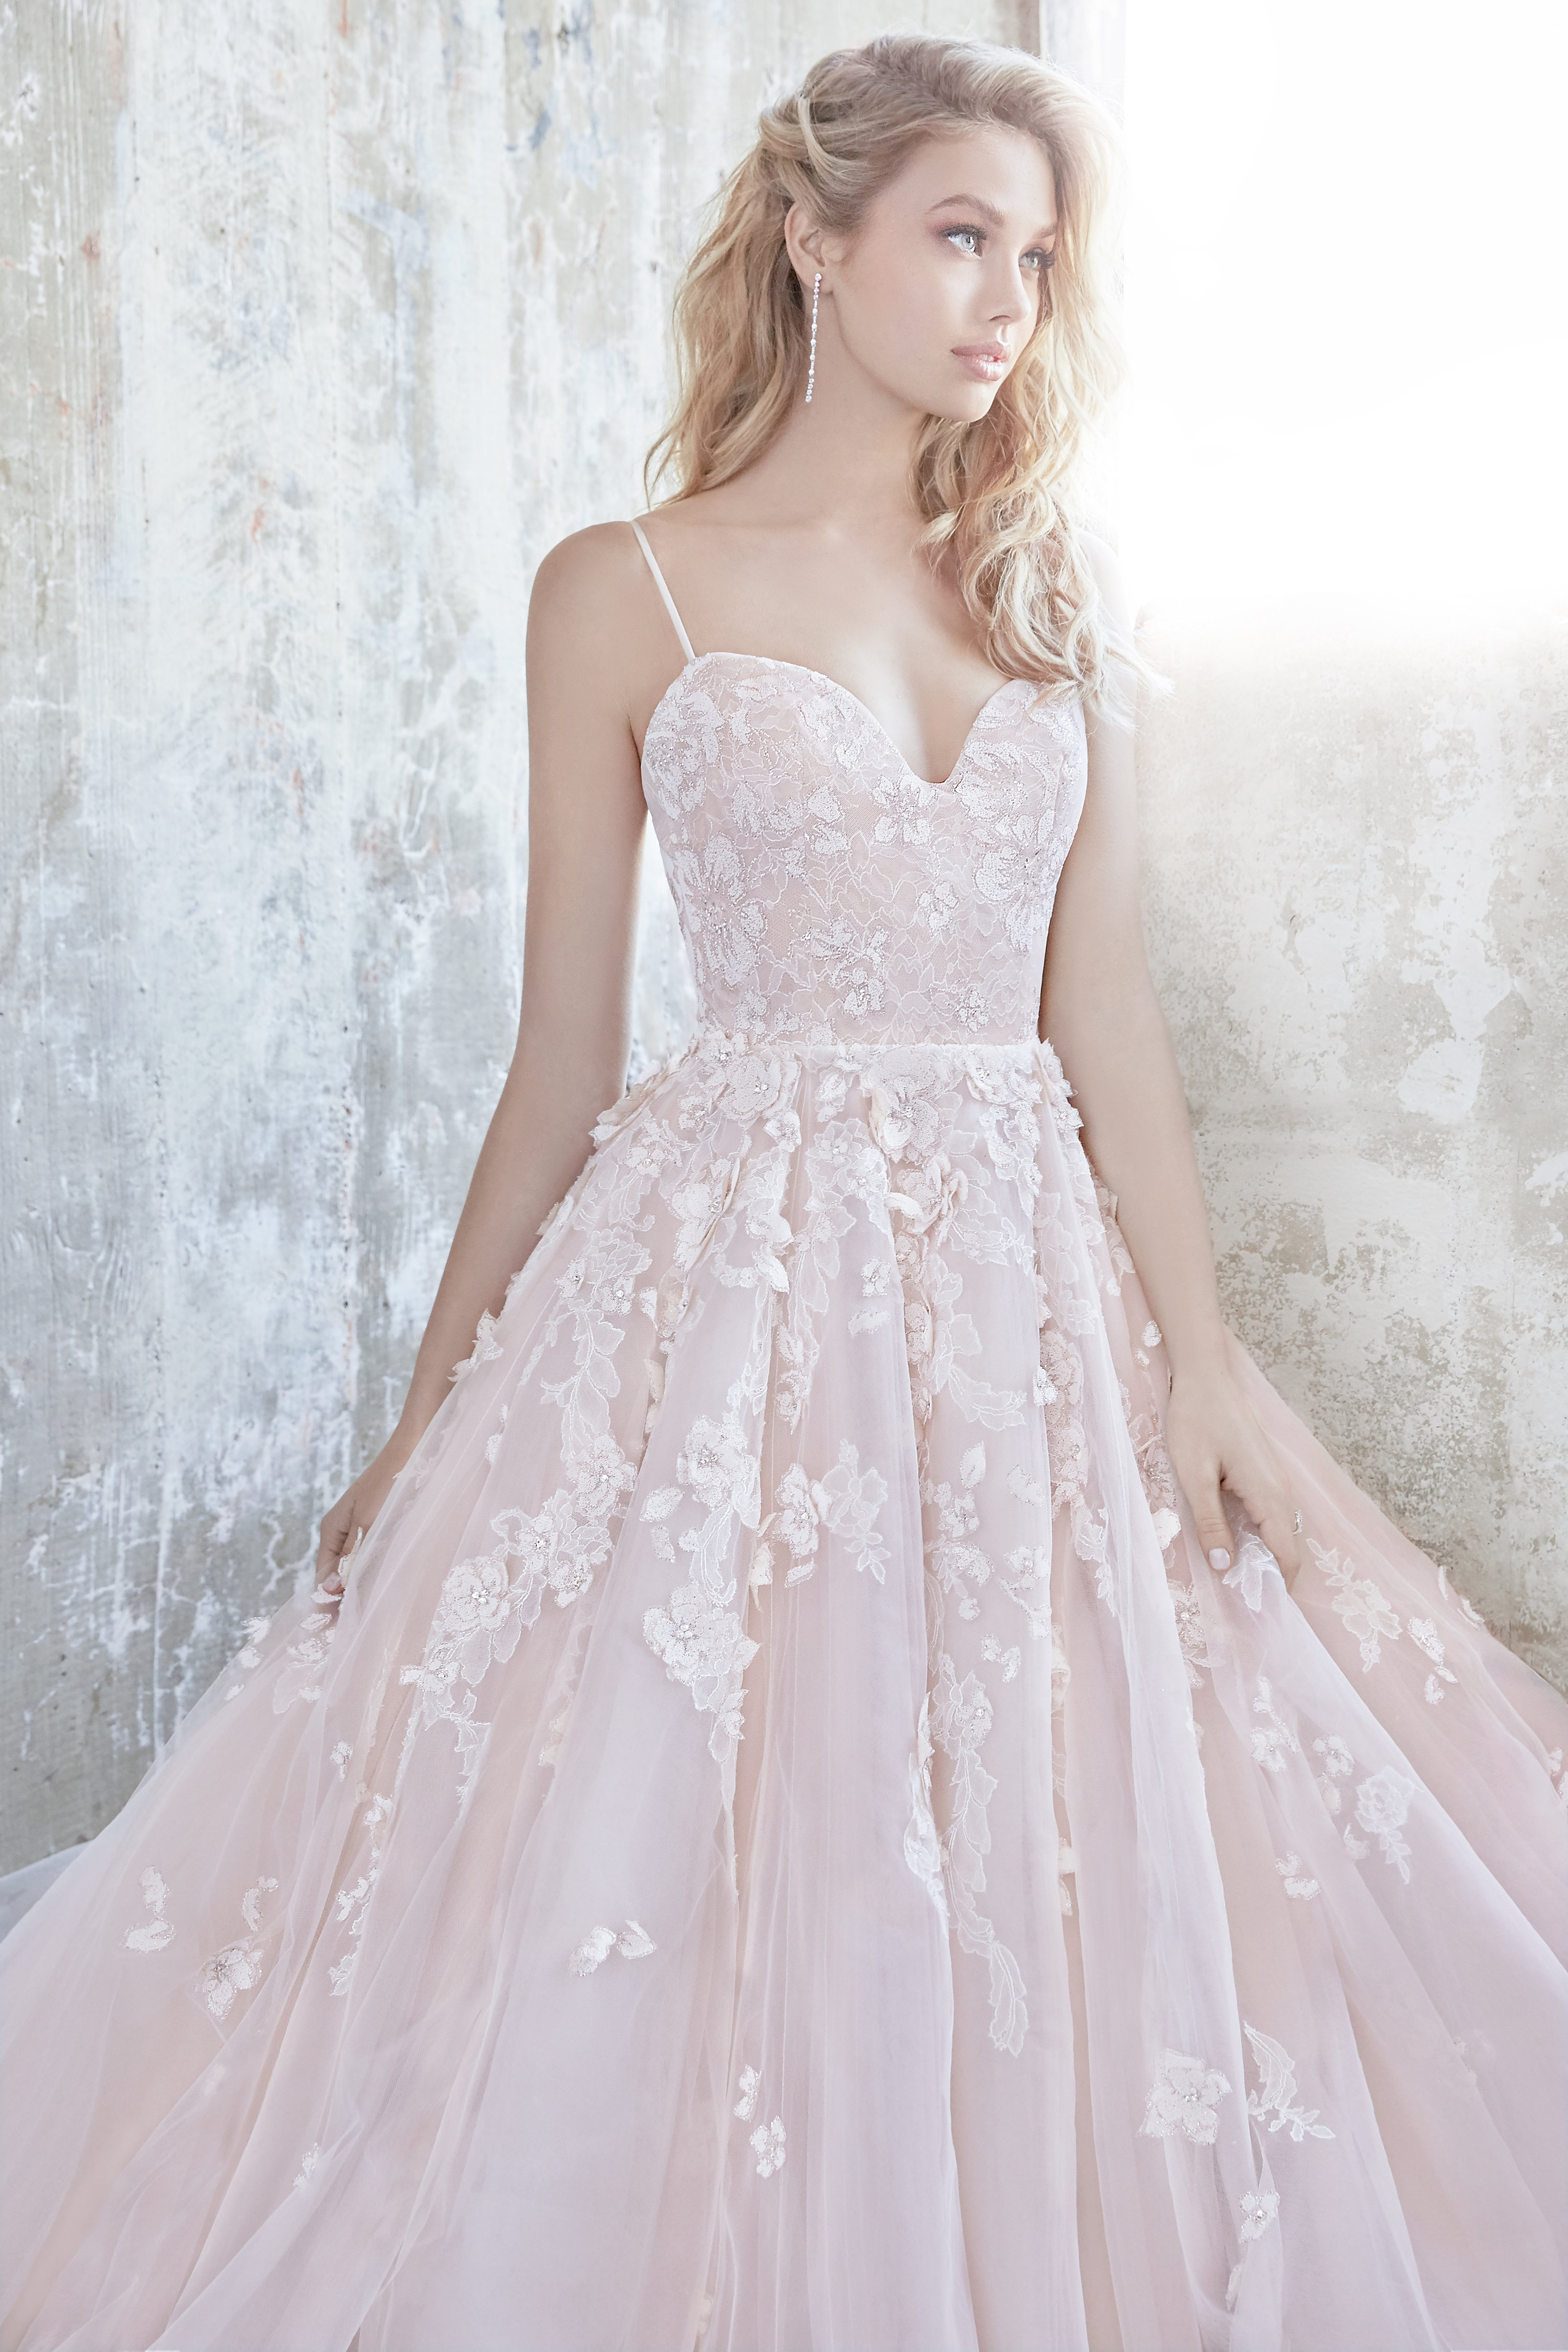 pink flower wedding dress bridal gowns and wedding dresses by jlm couture style 6581